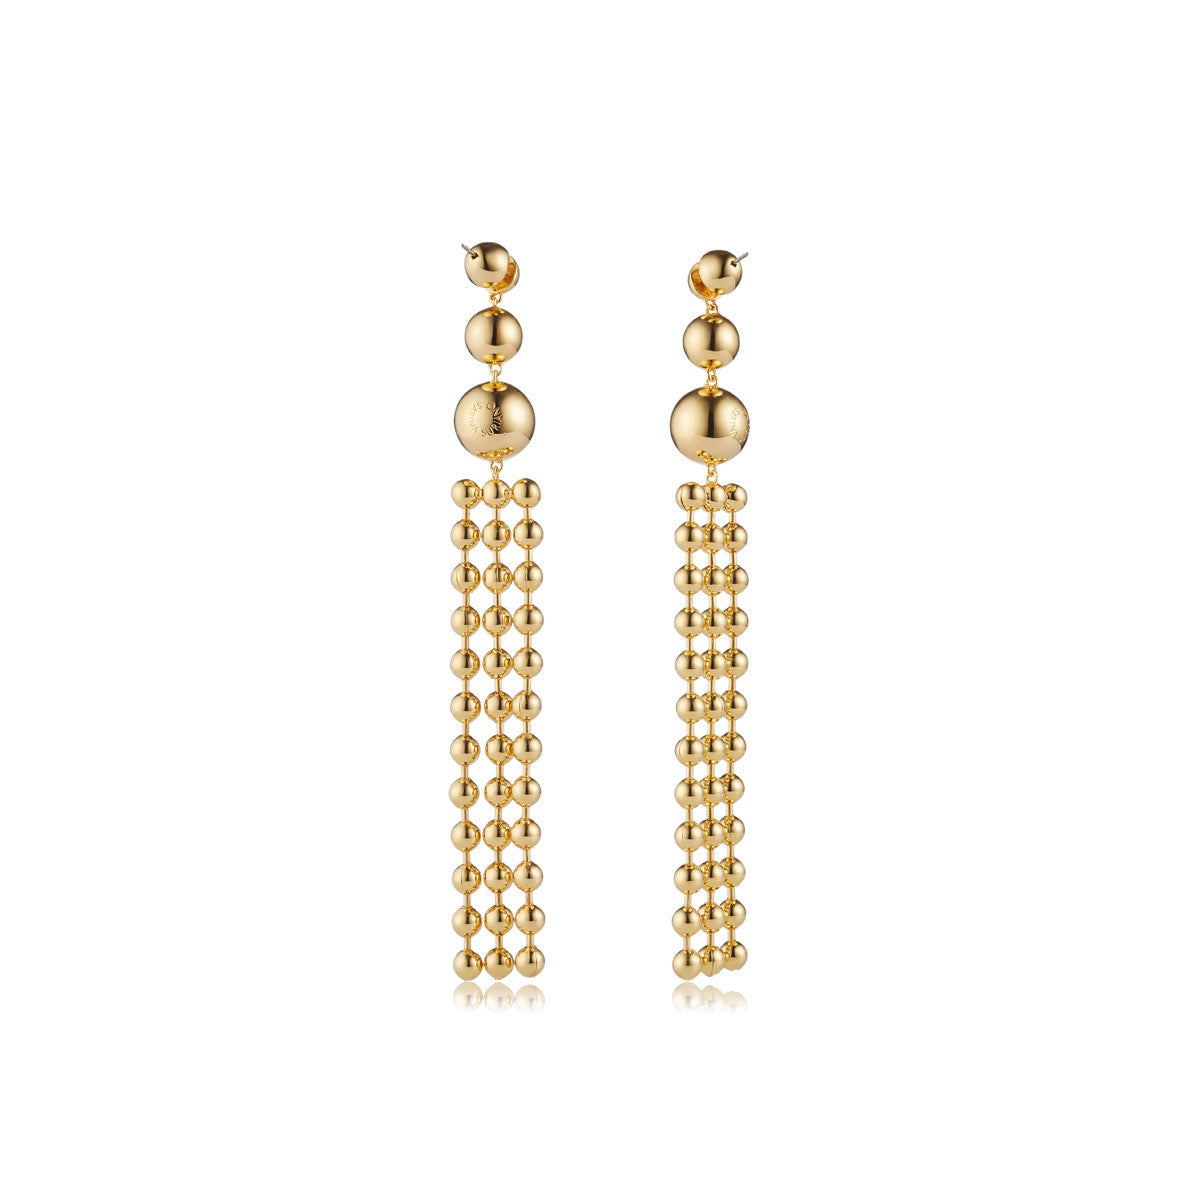 Solid brass, 18K gold plated Ad Astra drop earrings - back